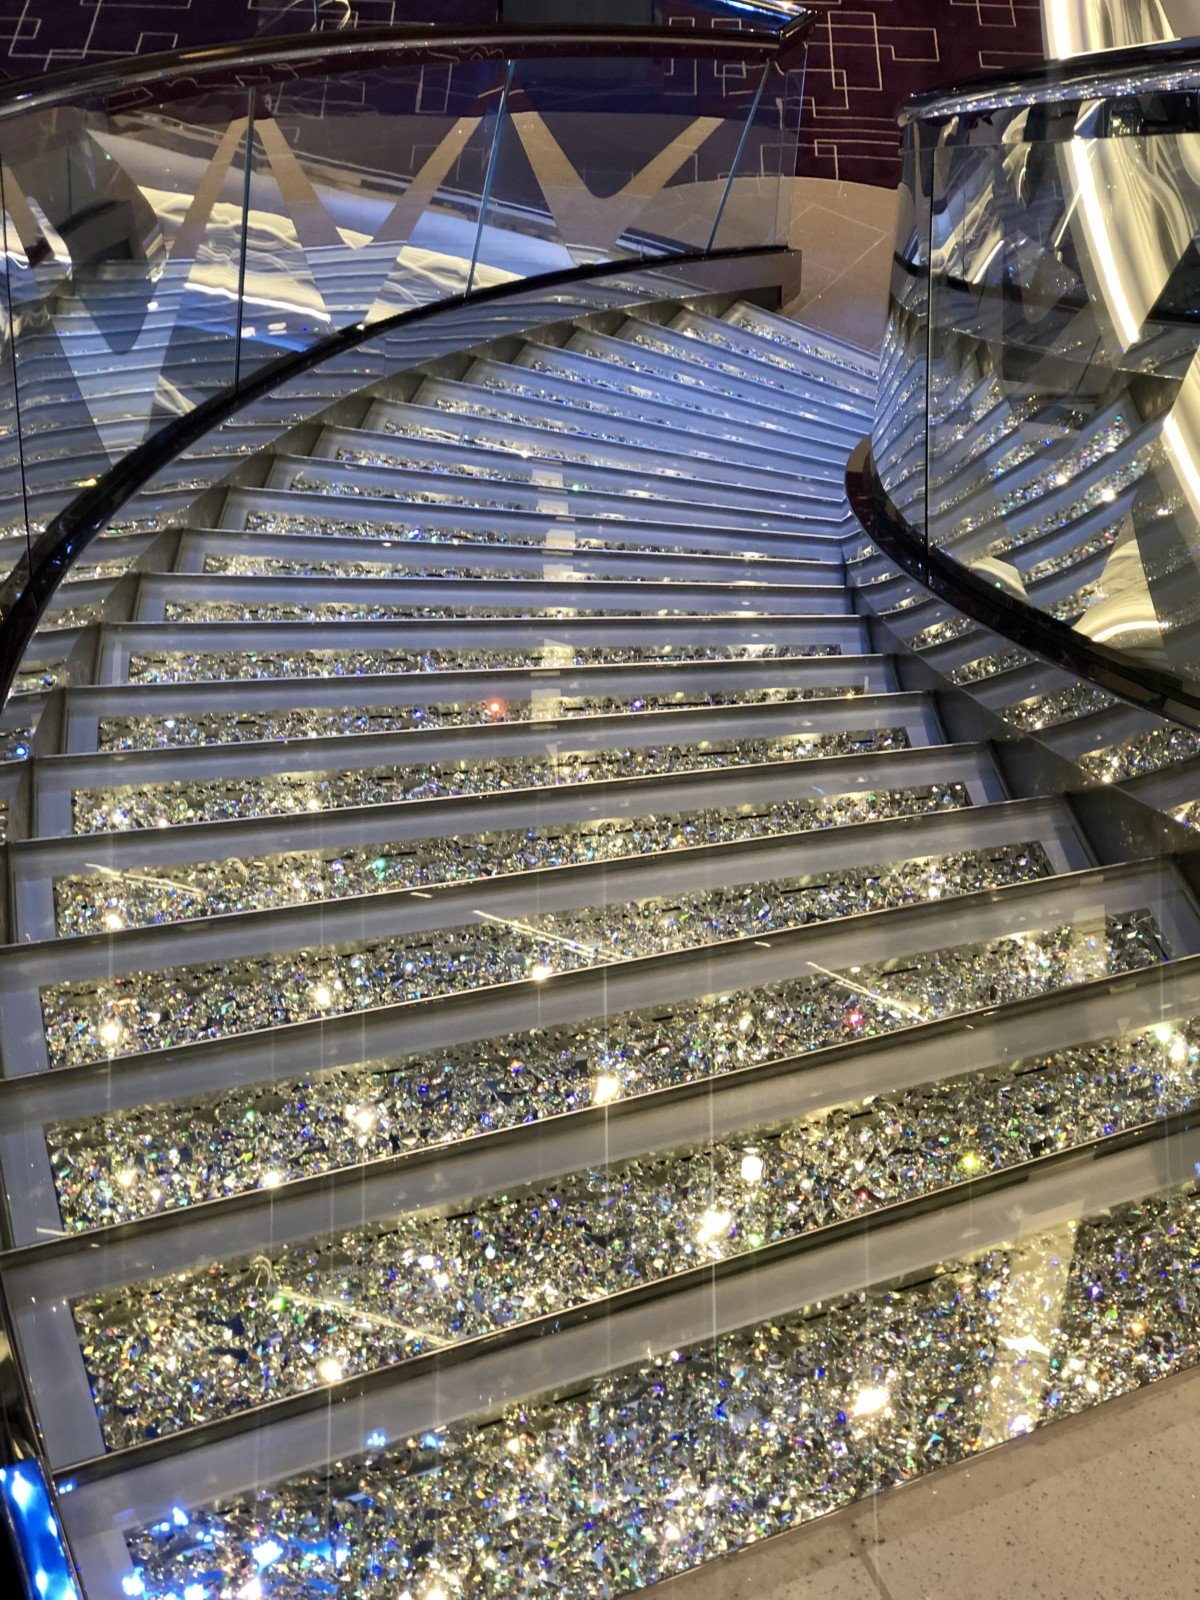 MSC Bellissima Crystal Stair are over £8000 each, these are in the central atrium